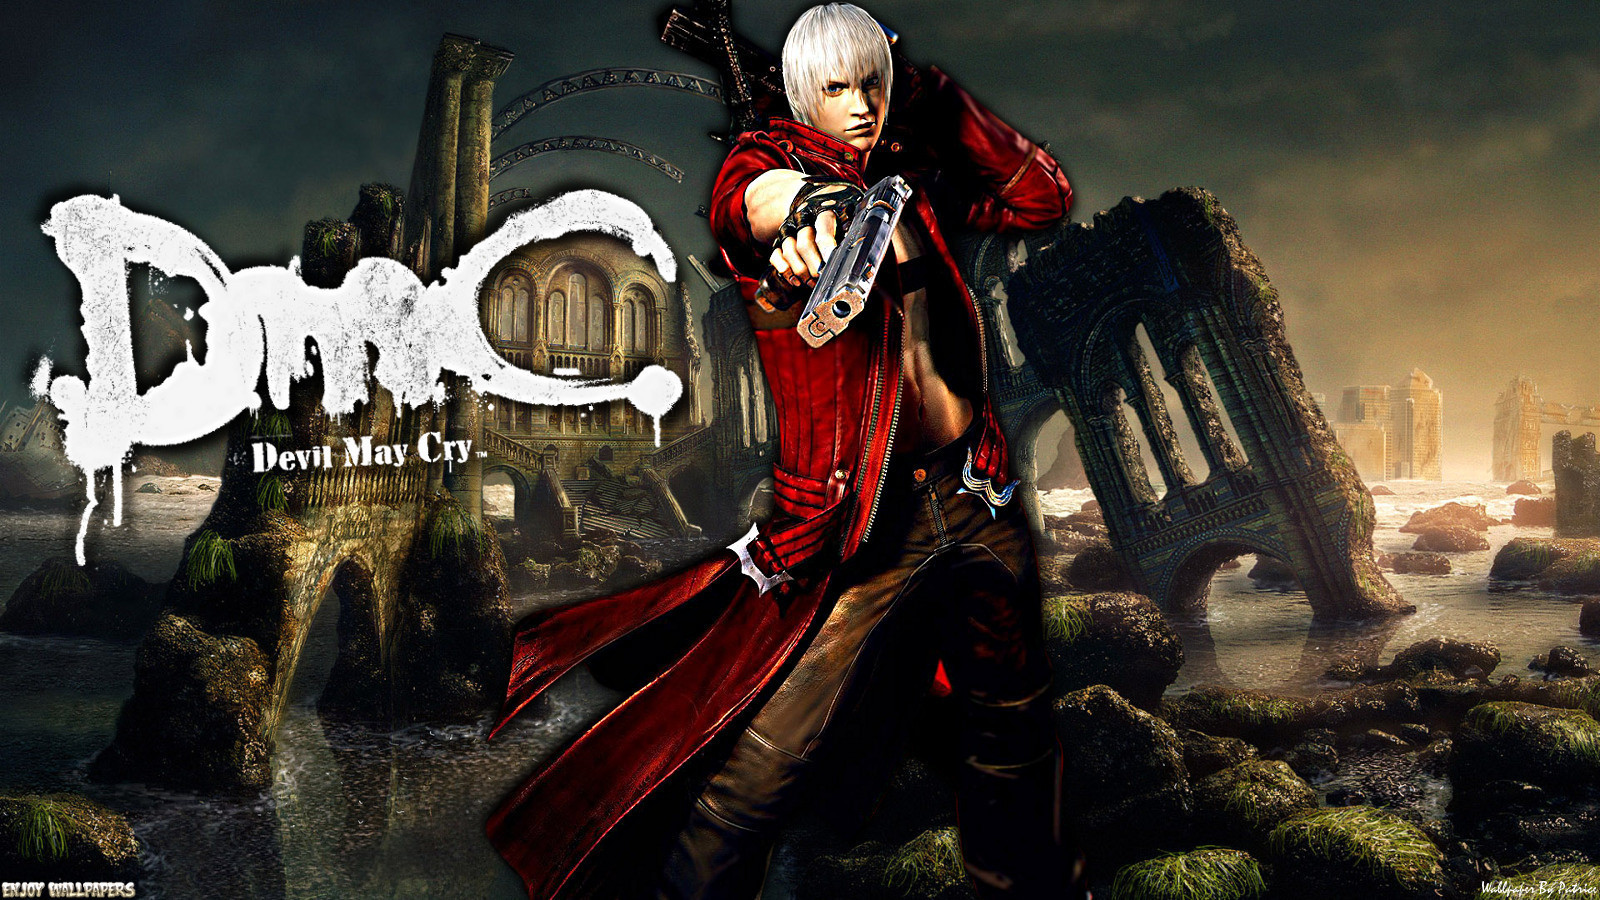 http://4.bp.blogspot.com/-pKP3WOr-T94/USTl2gotLFI/AAAAAAAAGpA/8YPWYGOOEwE/s1600/Devil+May+Cry+Wallpaper+1600x900+By+Patrice.jpg